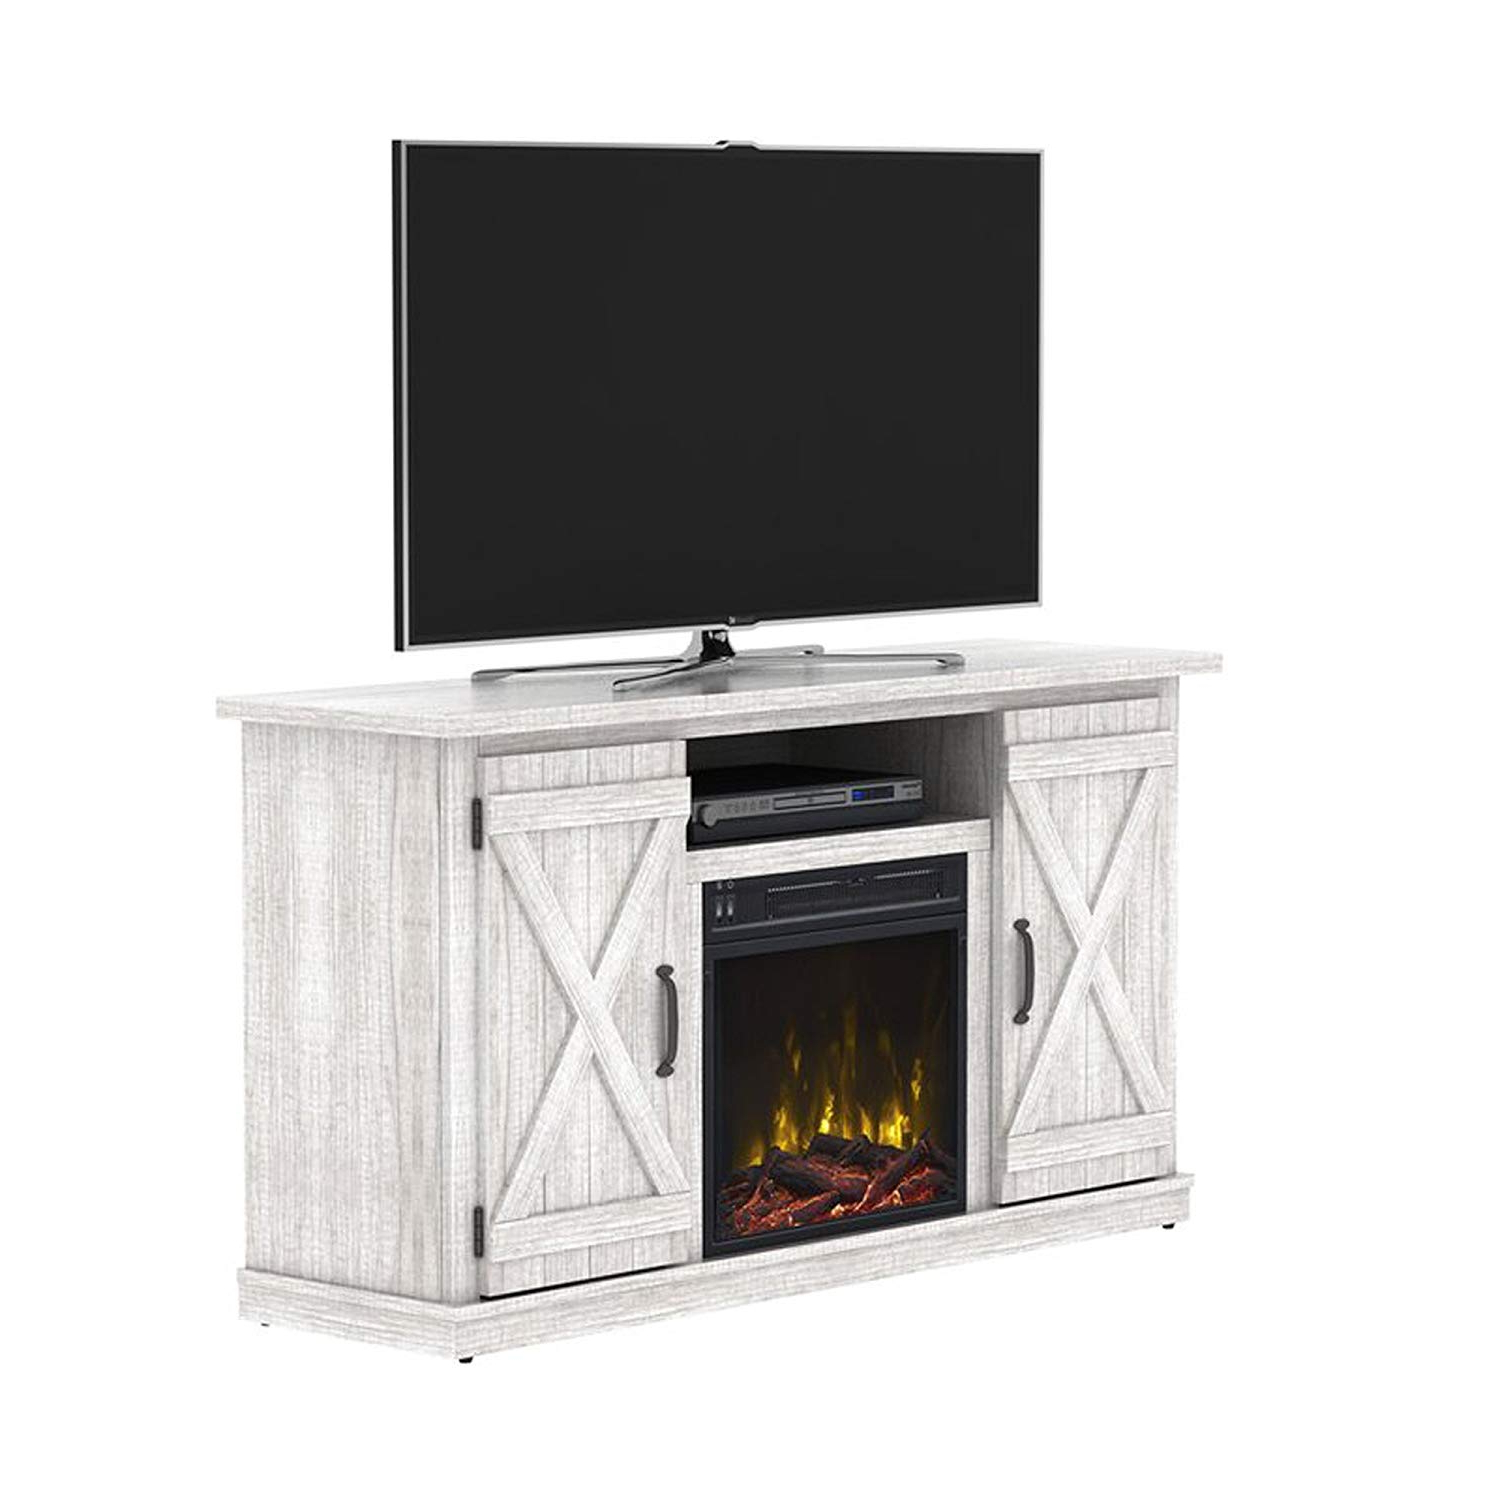 Raven Grey Tv Stands Regarding Best And Newest Amazon: Industrial Tv Stand With Fireplace – Antique Rustic Look (Gallery 15 of 20)